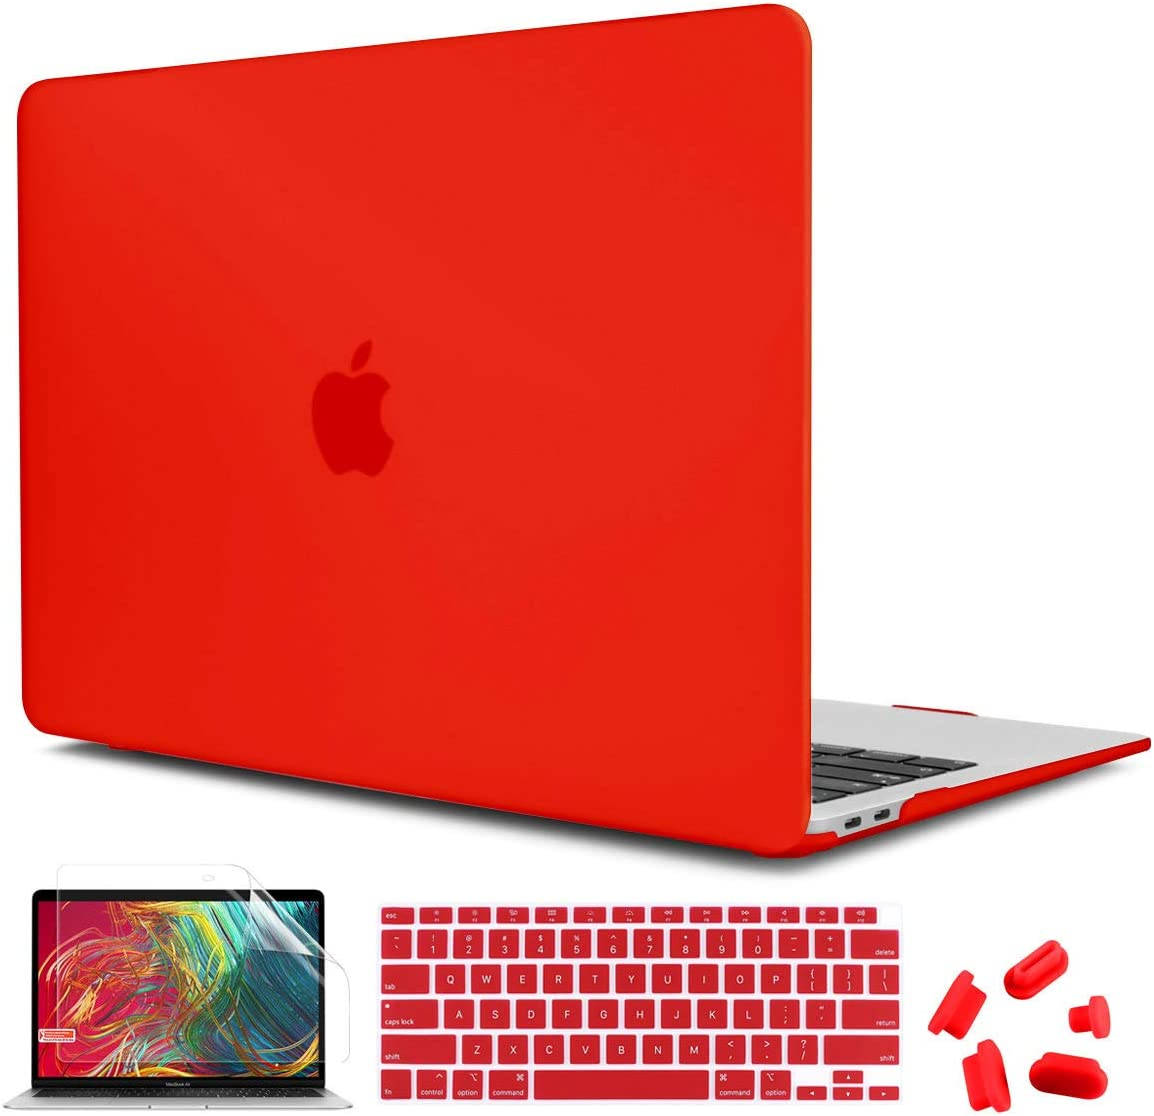 CiSoo Cover for MacBook Air 13 Inch Case Red, Plastic Hard Shell Case with Keyboard Cover for MacBook Air 13 A2179 A2337 M1 Model 2020 Release with Touch ID, Matte Red